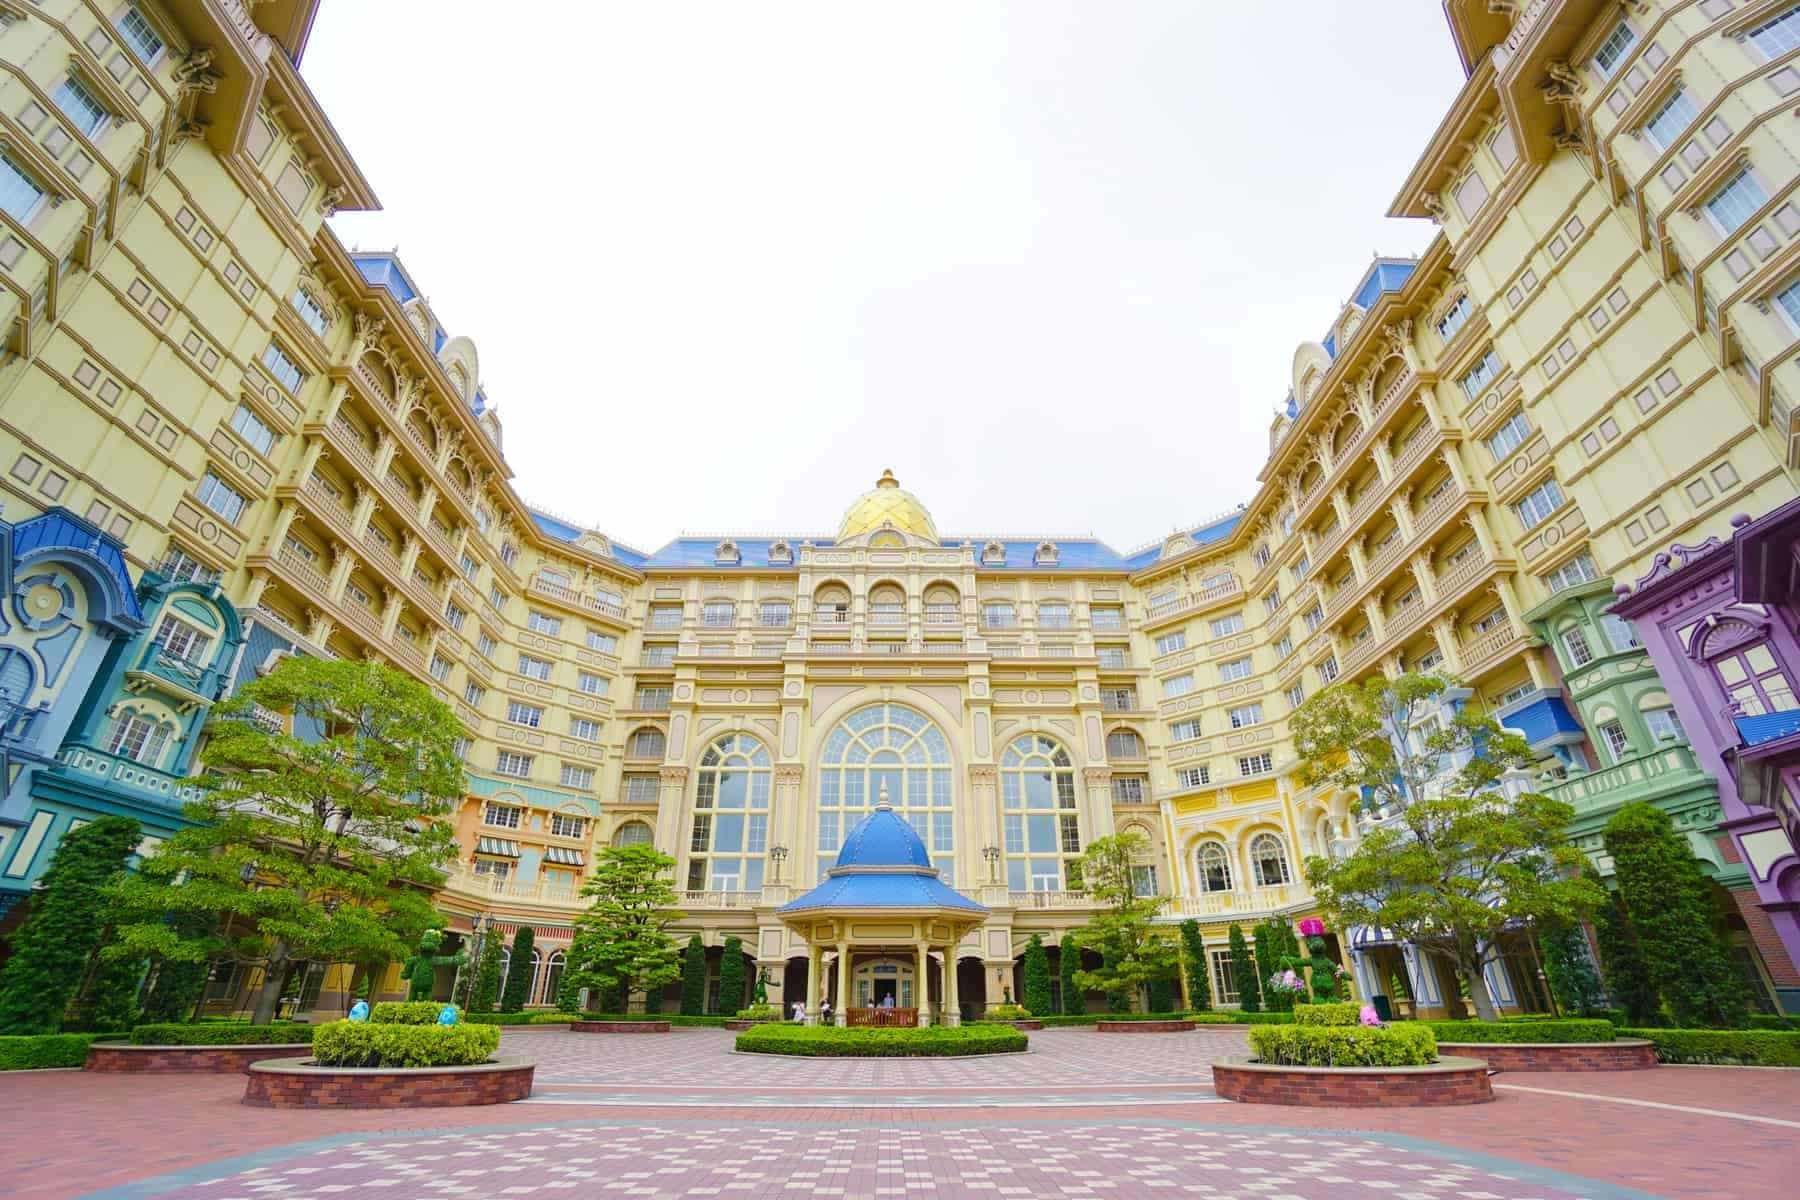 The Tokyo Disneyland Hotel located in front of the Tokyo Disneyland park with the Tokyo Disneyland station of the Disney Resort Line monorail system in Chiba, Japan